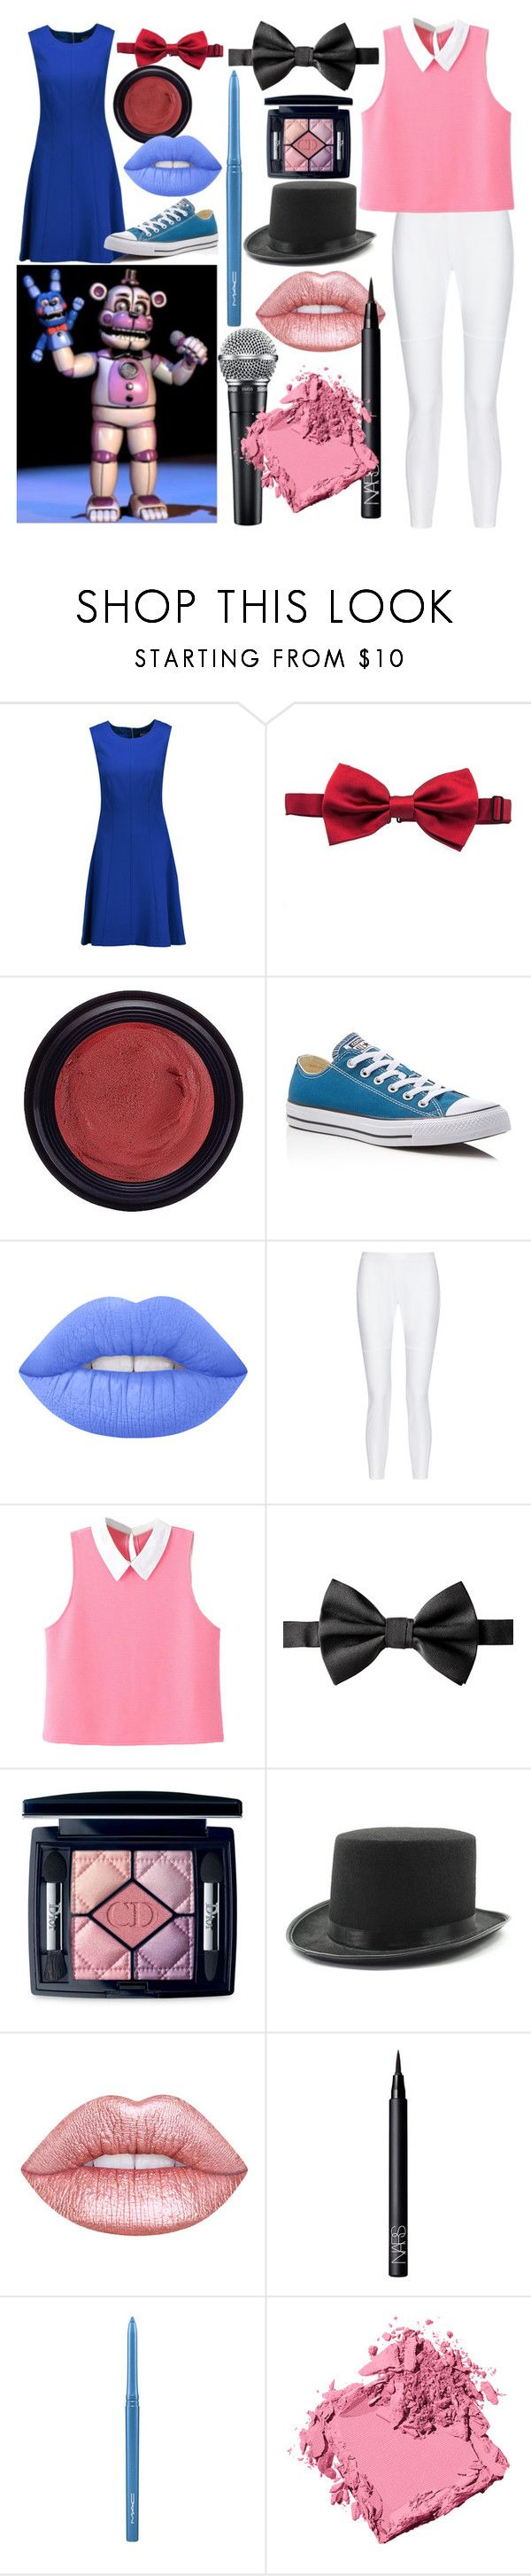 """""""FNAF Sister Location Funtime Freddy And Bonnie Puppet"""" by dappershadow ❤ liked on Polyvore featuring Magaschoni, Dolce&Gabbana, Real Purity, Converse, Lime Crime, 10 Crosby Derek Lam, WithChic, Christian Dior, NARS Cosmetics and MAC Cosmetics"""